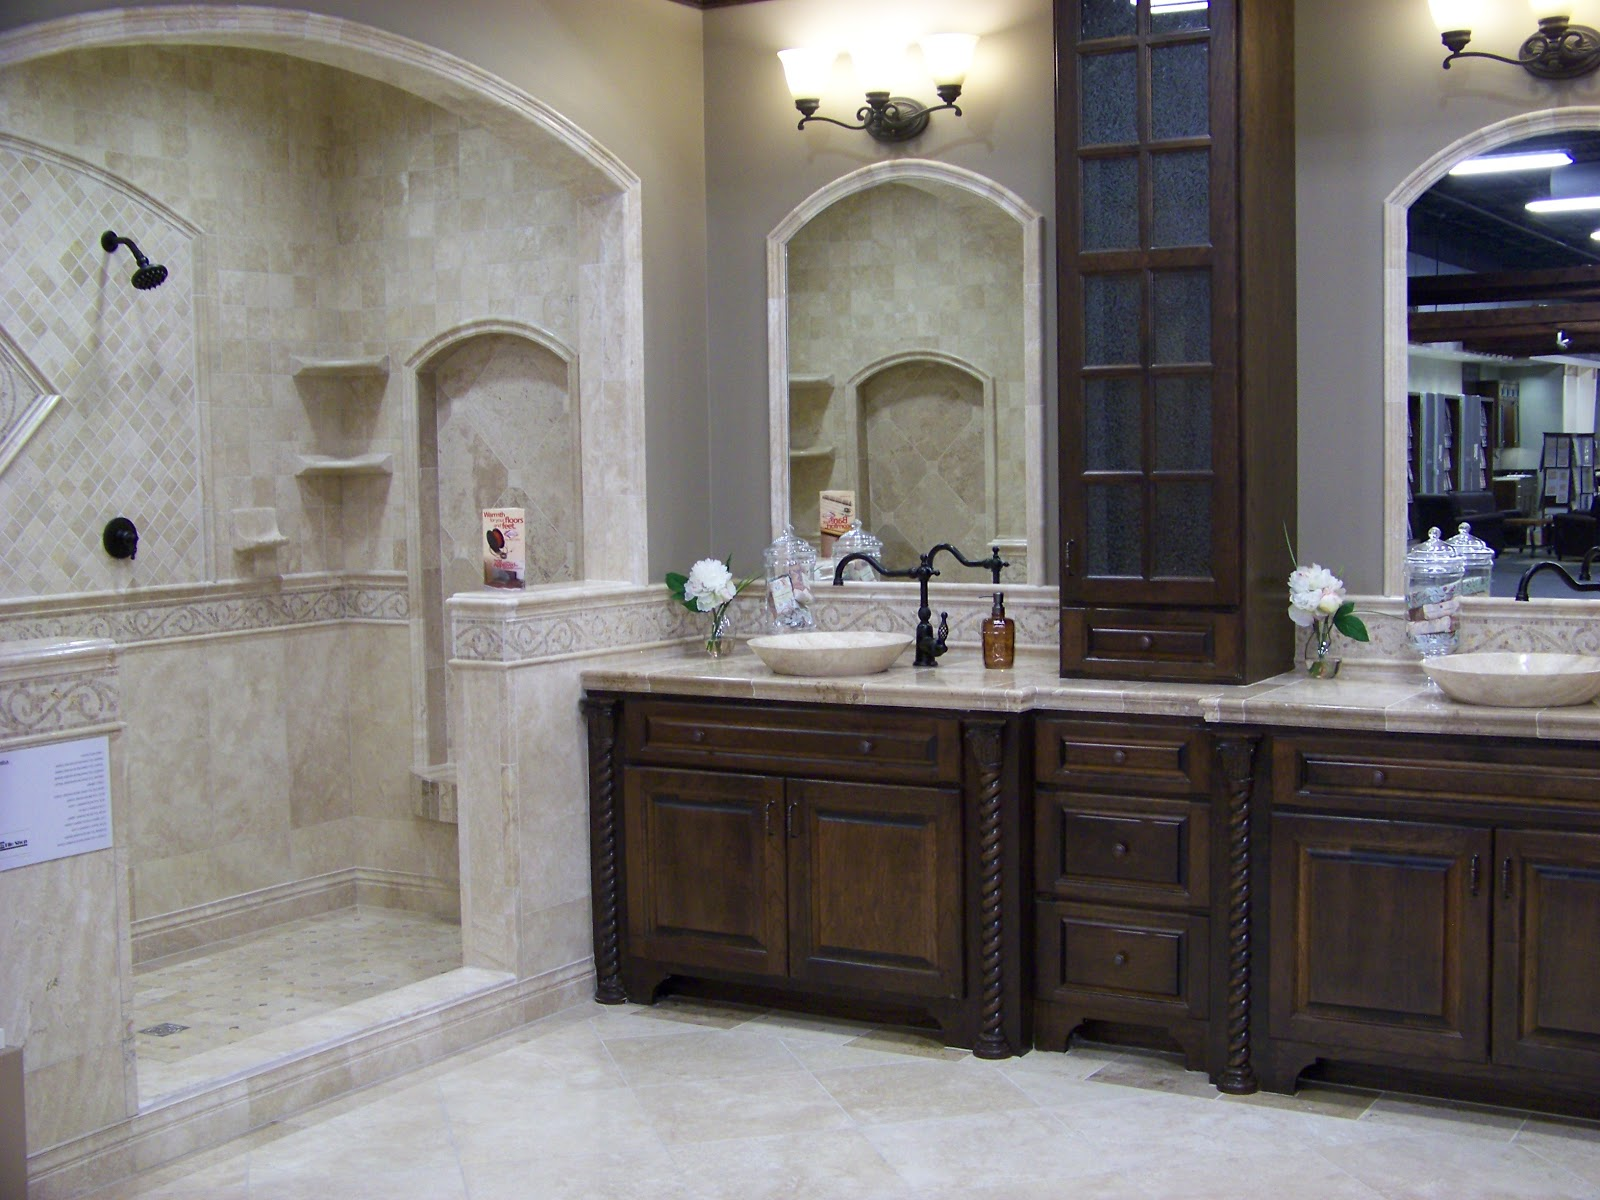 Home decor budgetista bathroom inspiration the tile shop for Bath tile design ideas photos